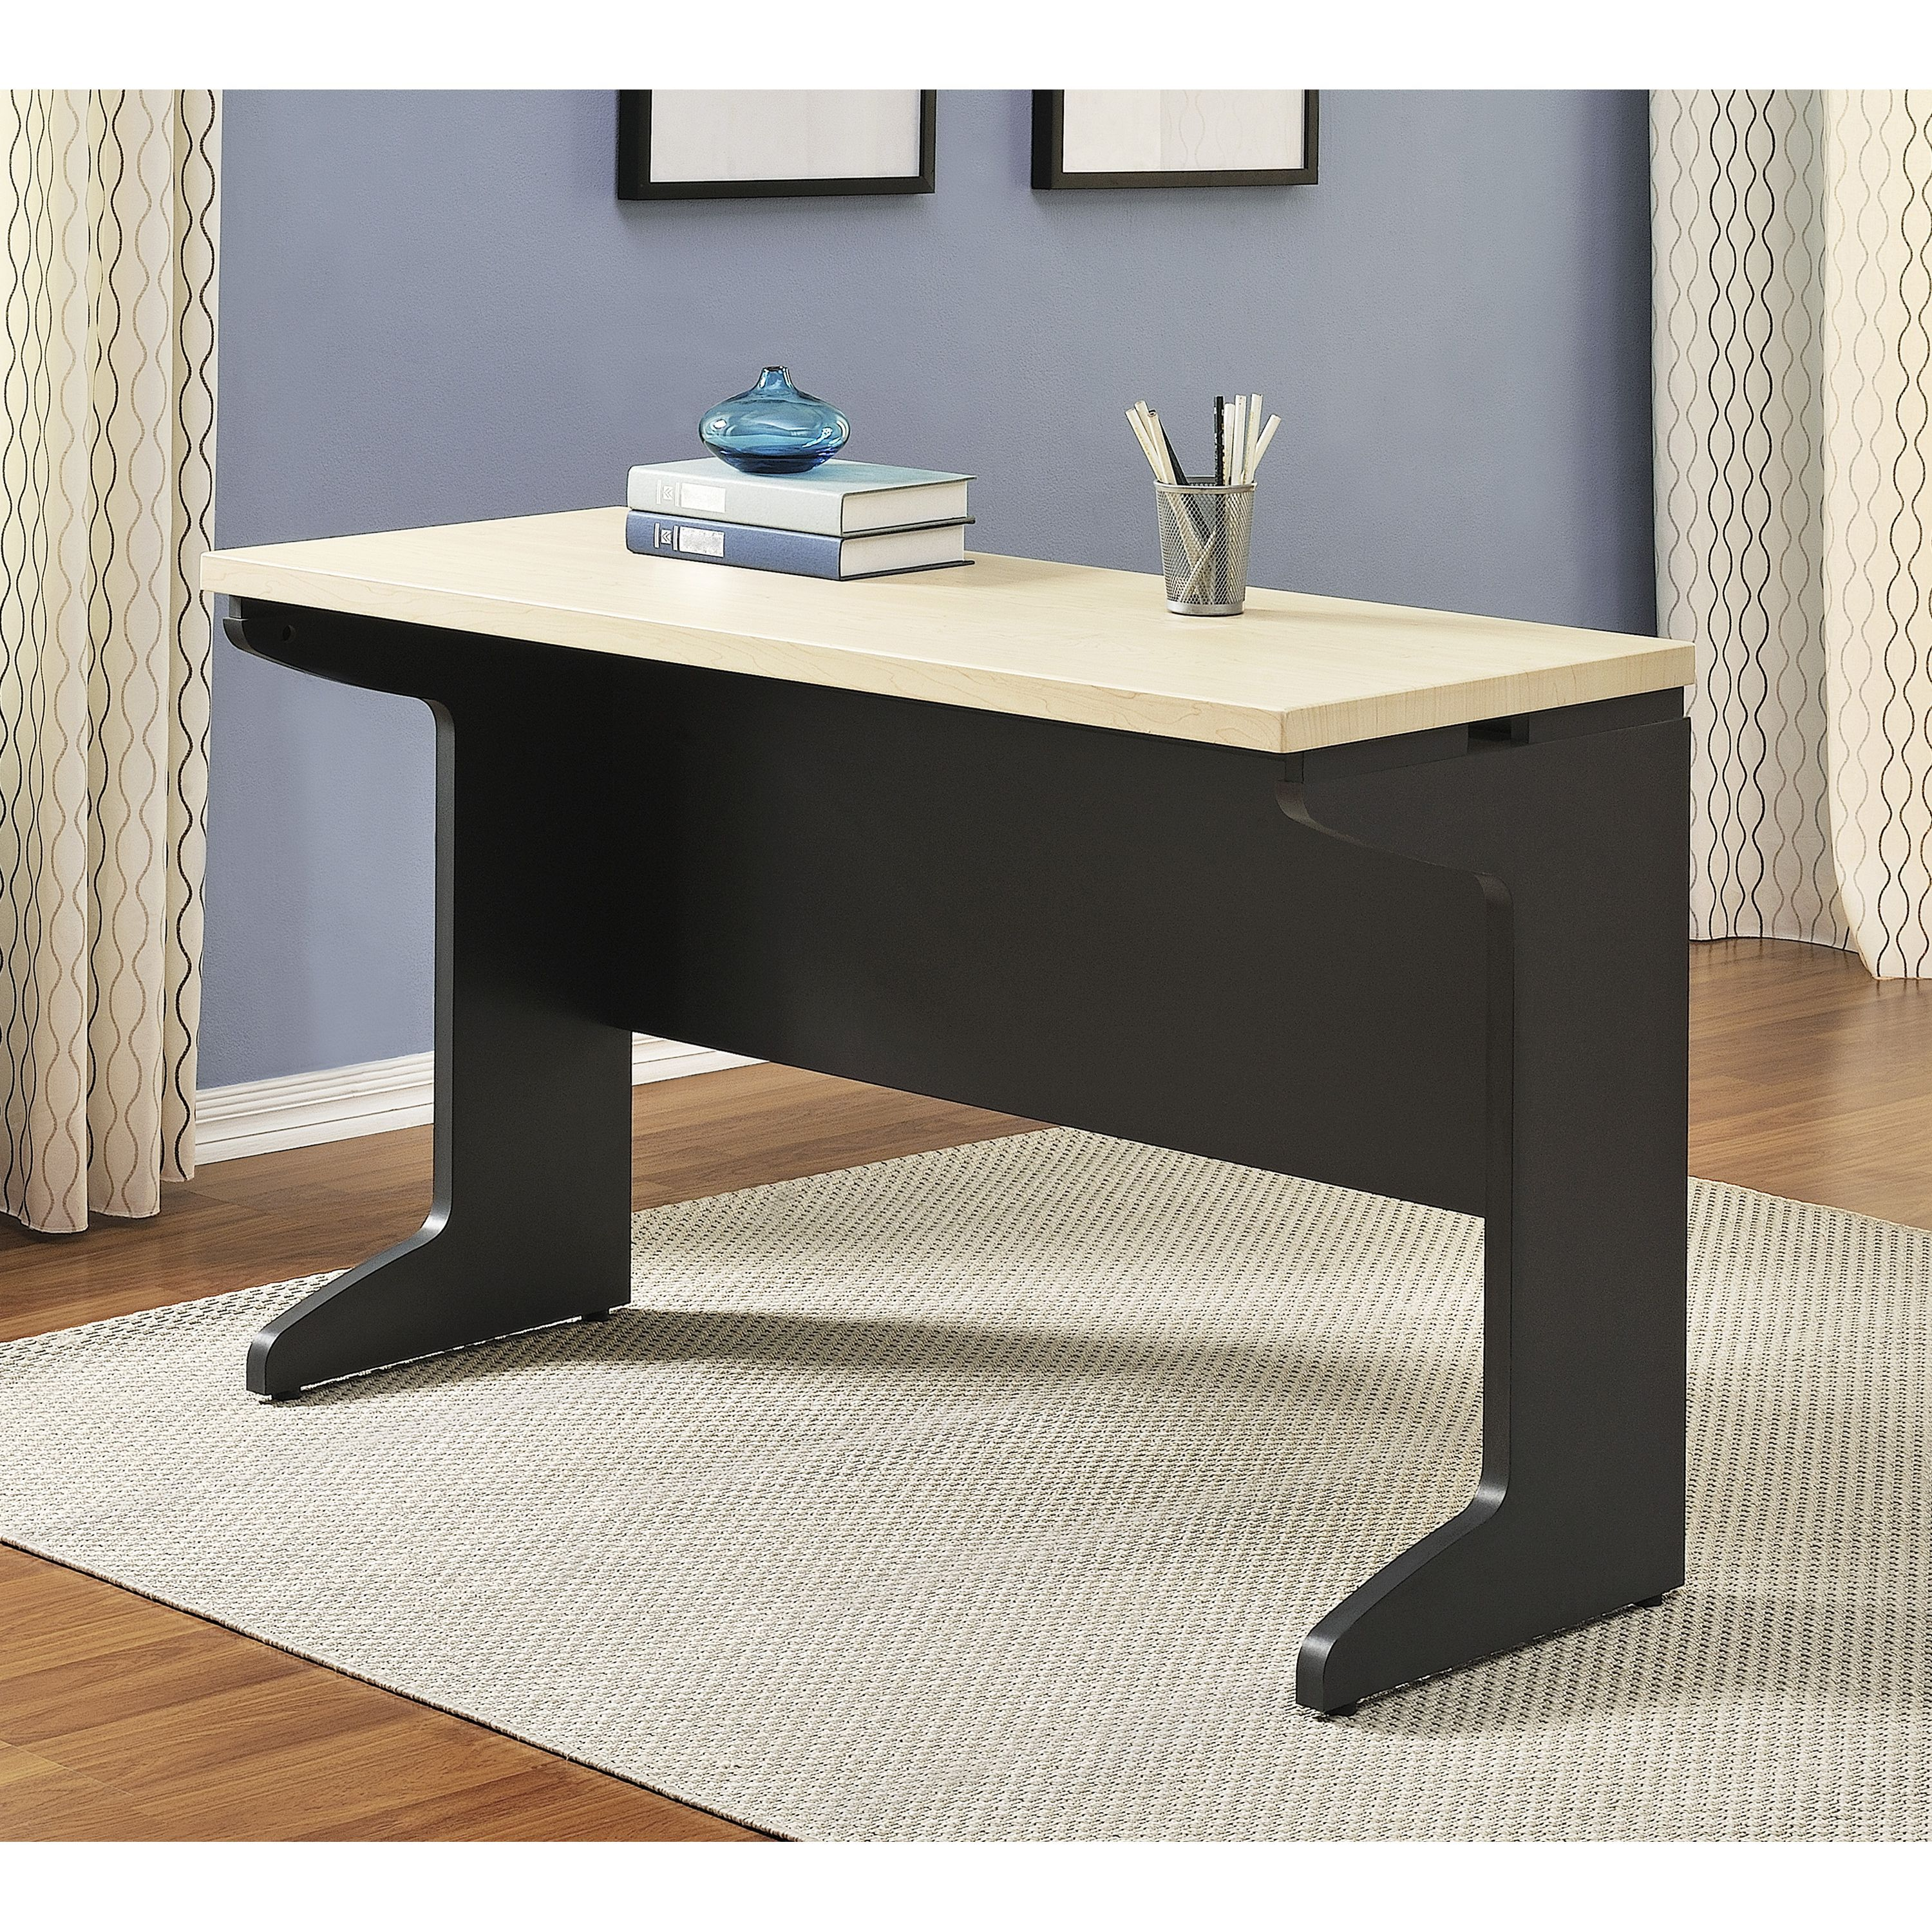 Executive office table with glass top instantly add a work surface to your office with this executive desk